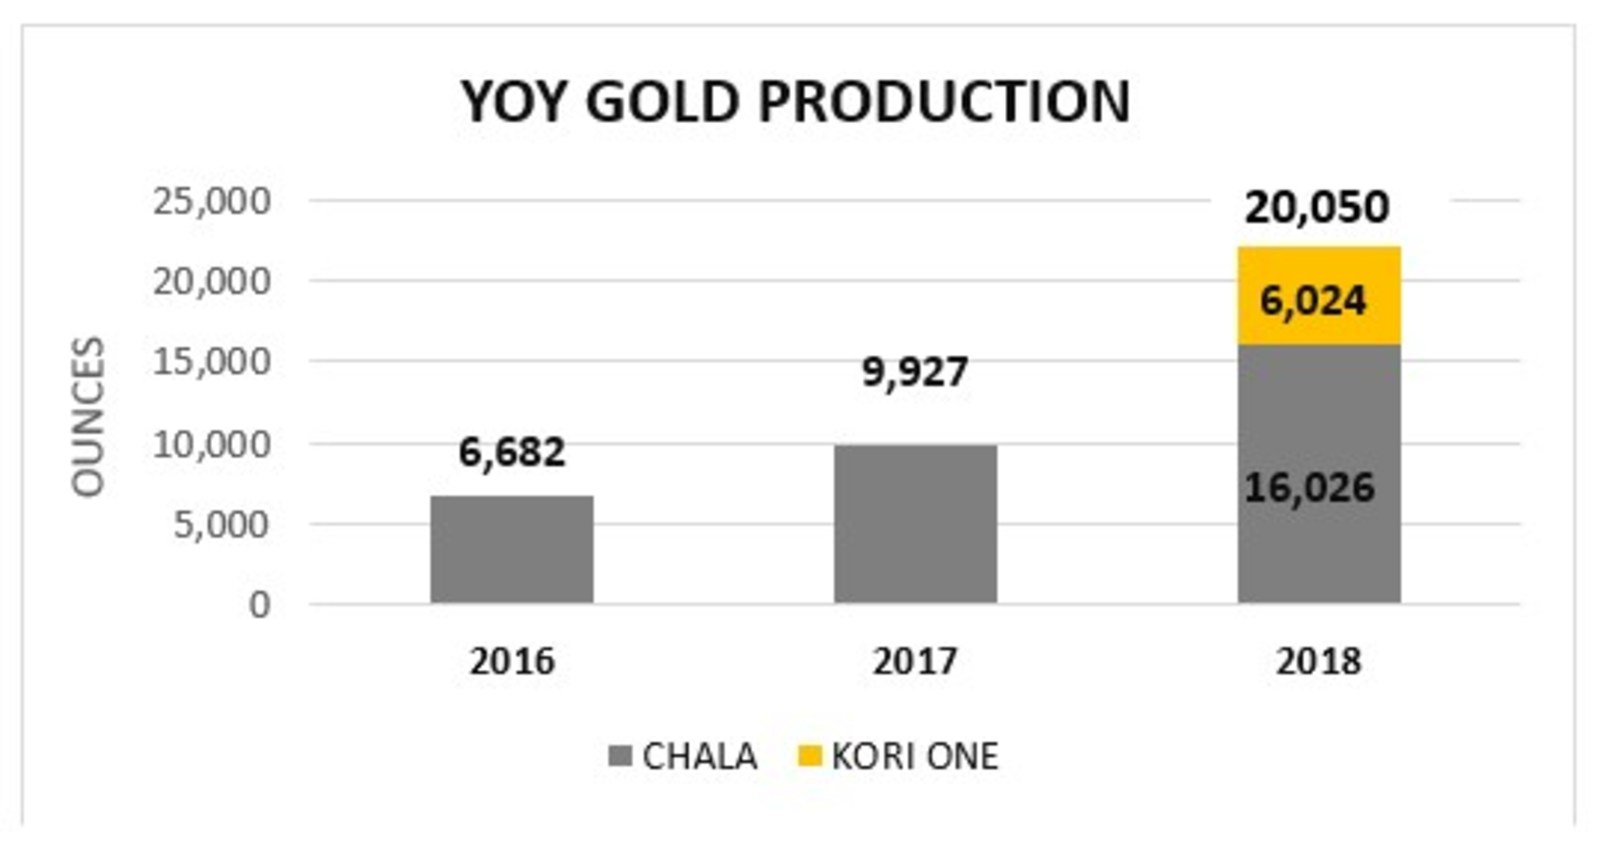 YOY Gold Production